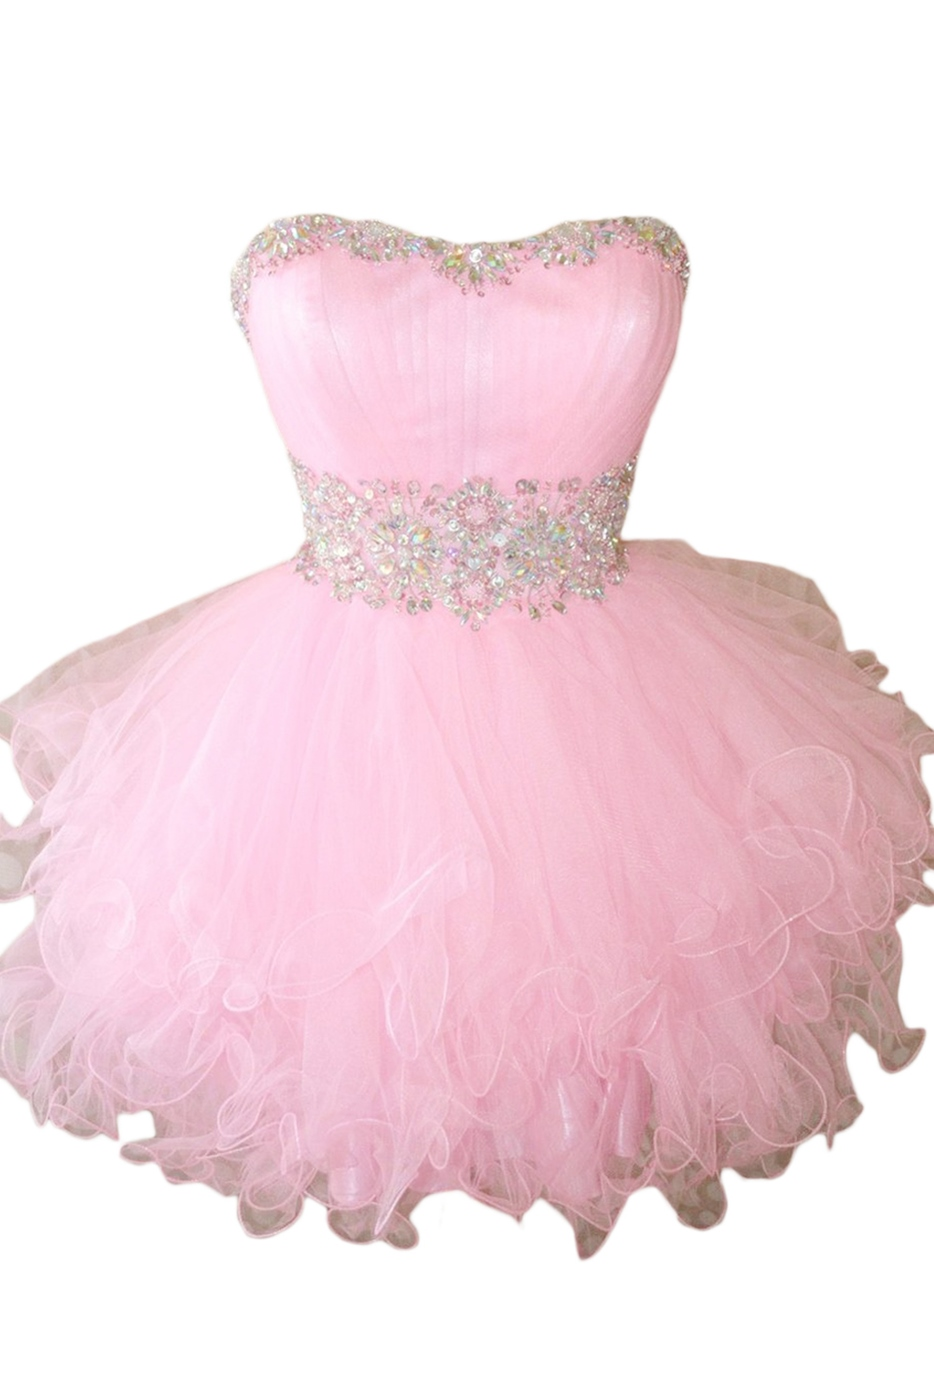 Ugly Sweet 16 Dresses -EricDress.com